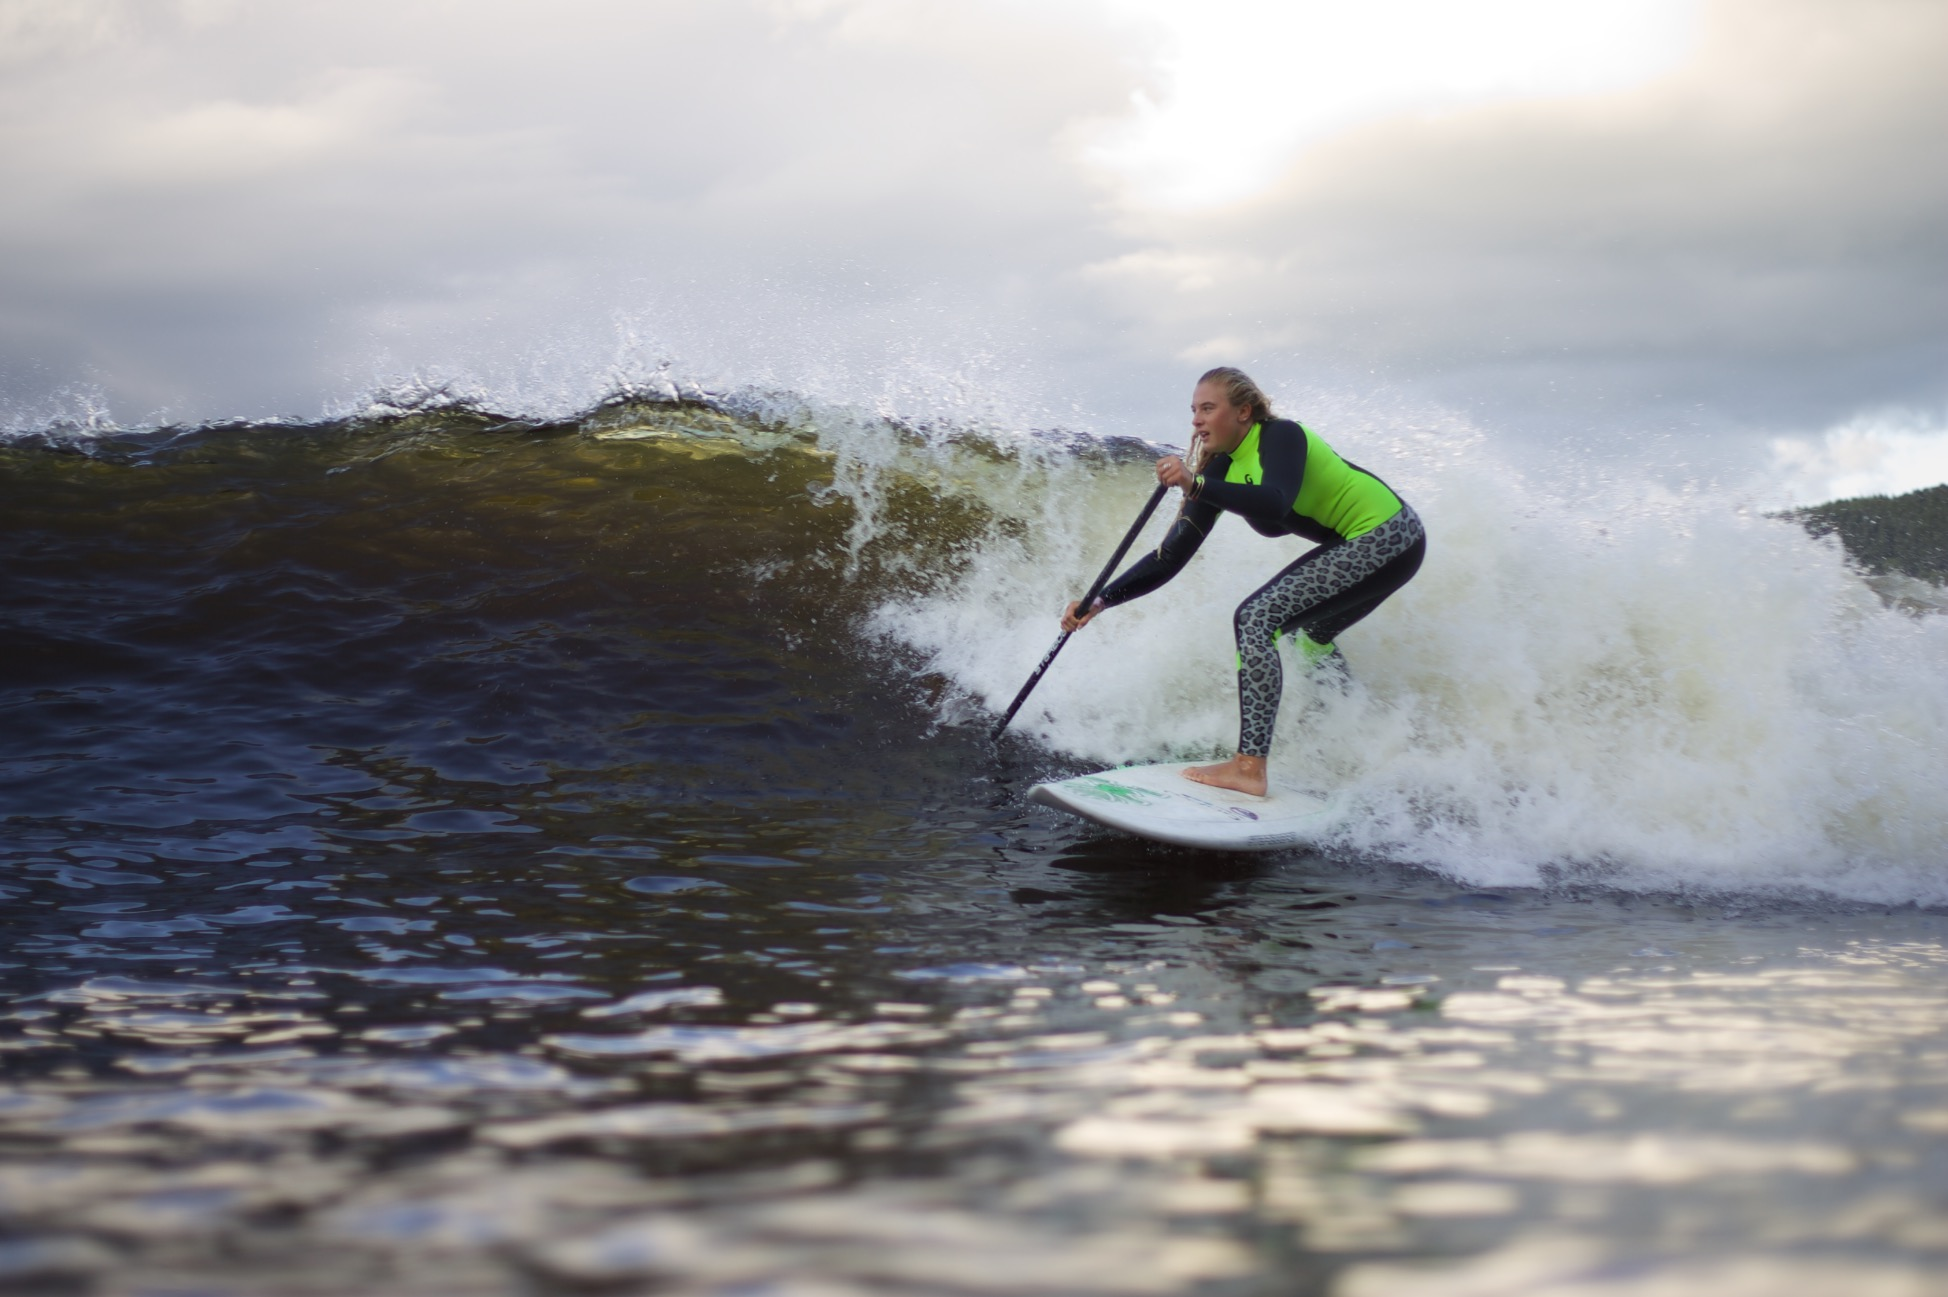 How to become a all rounded SUP surfer Feature image : Izzi Gomez Surf at Snowdonia by paulterry.co.uk/